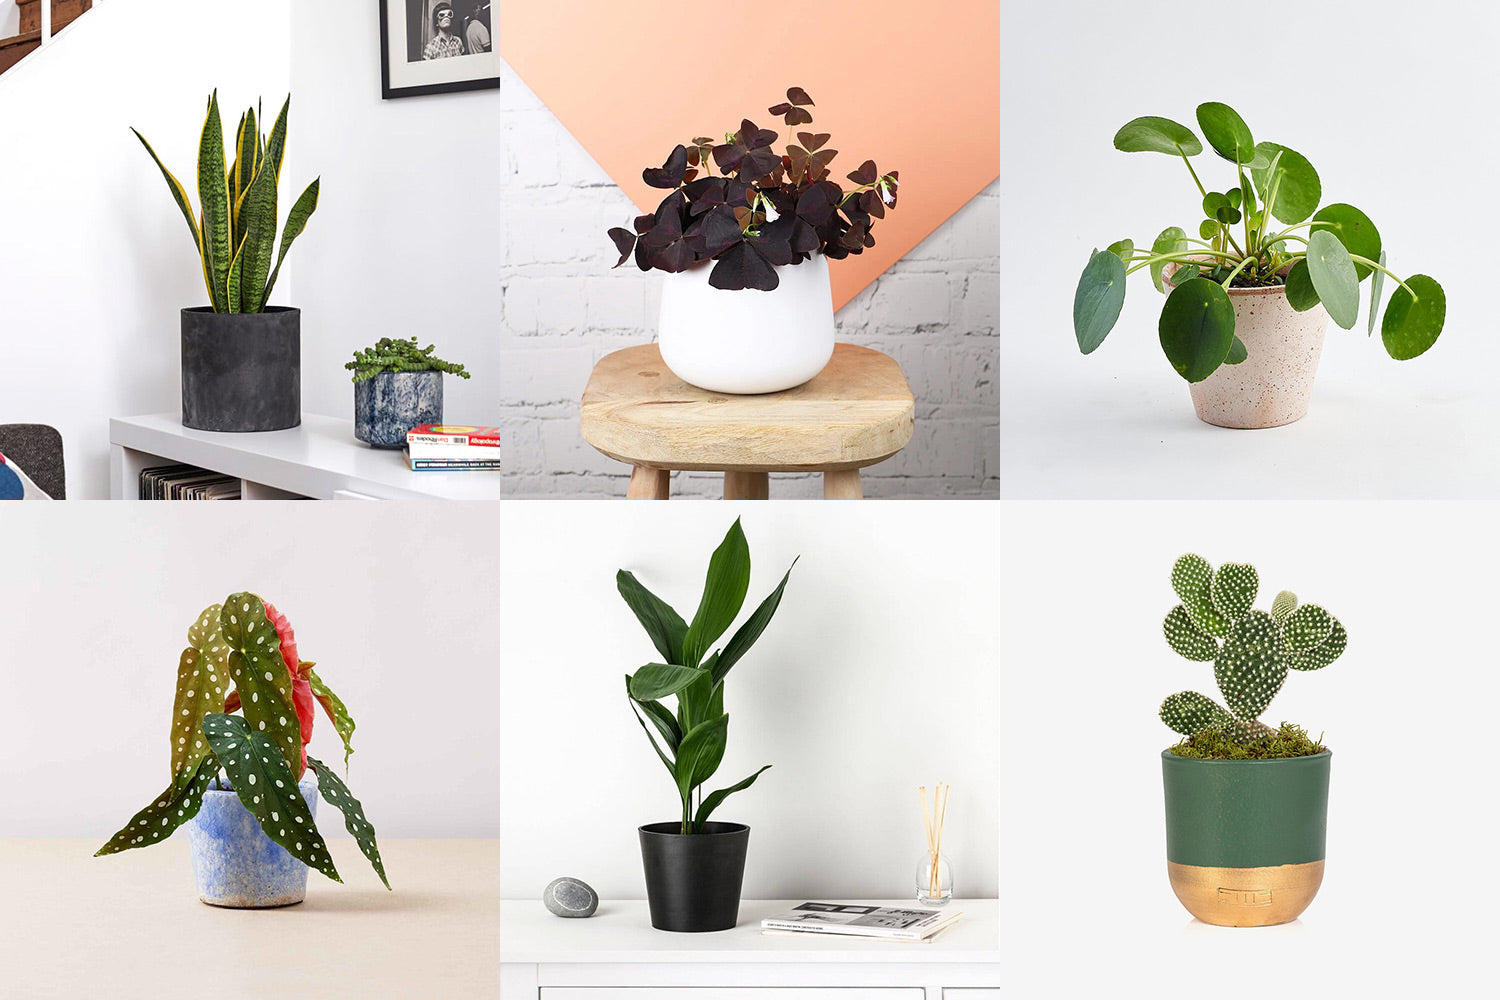 10 Houseplants to Spruce Up Your Space This Spring